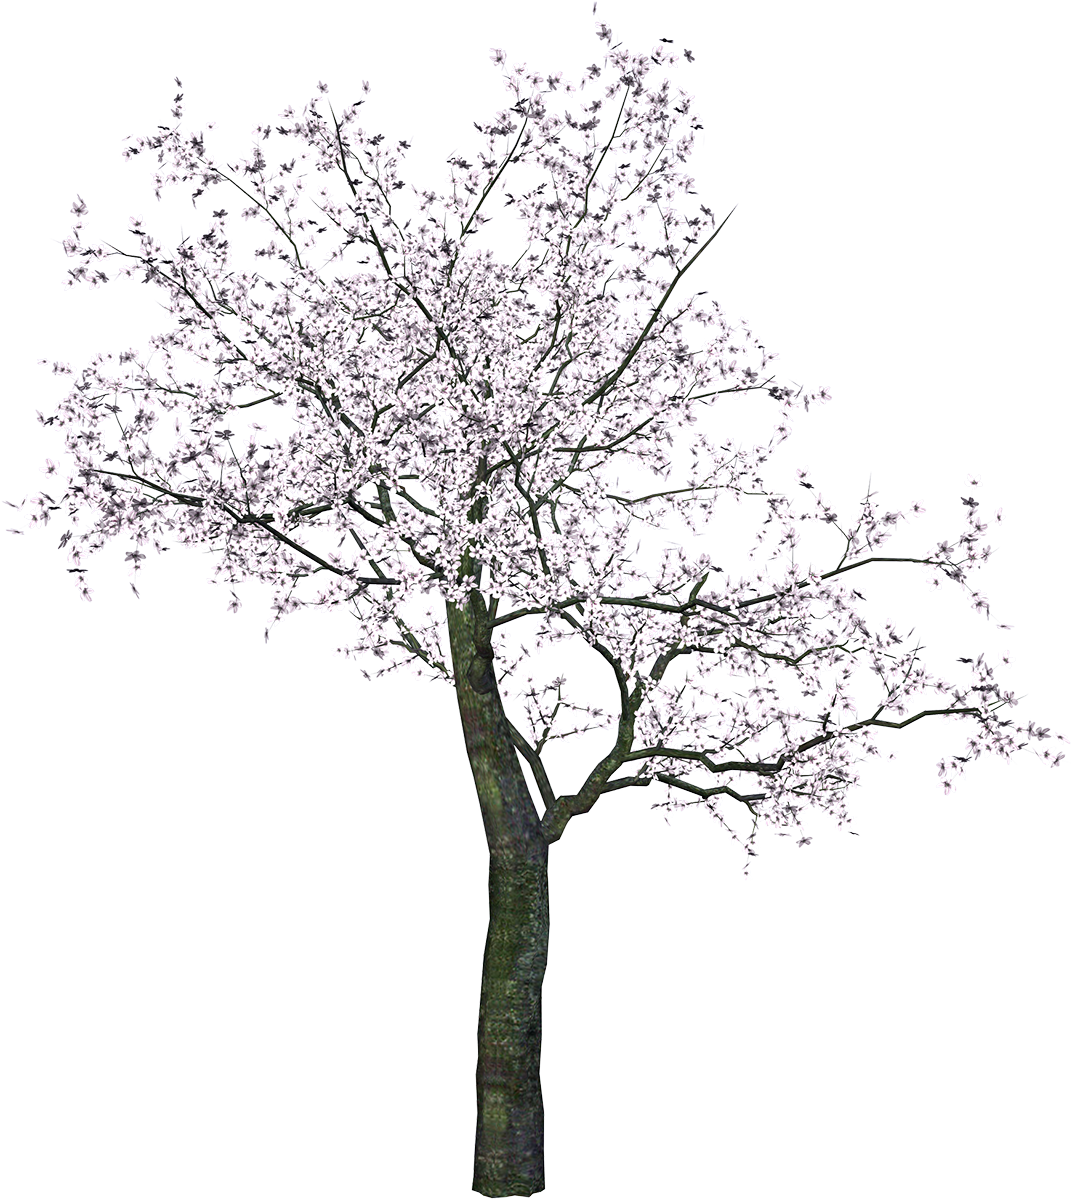 Clipart black and white apple tree in spring banner Tree Spring 22.png | Album banner